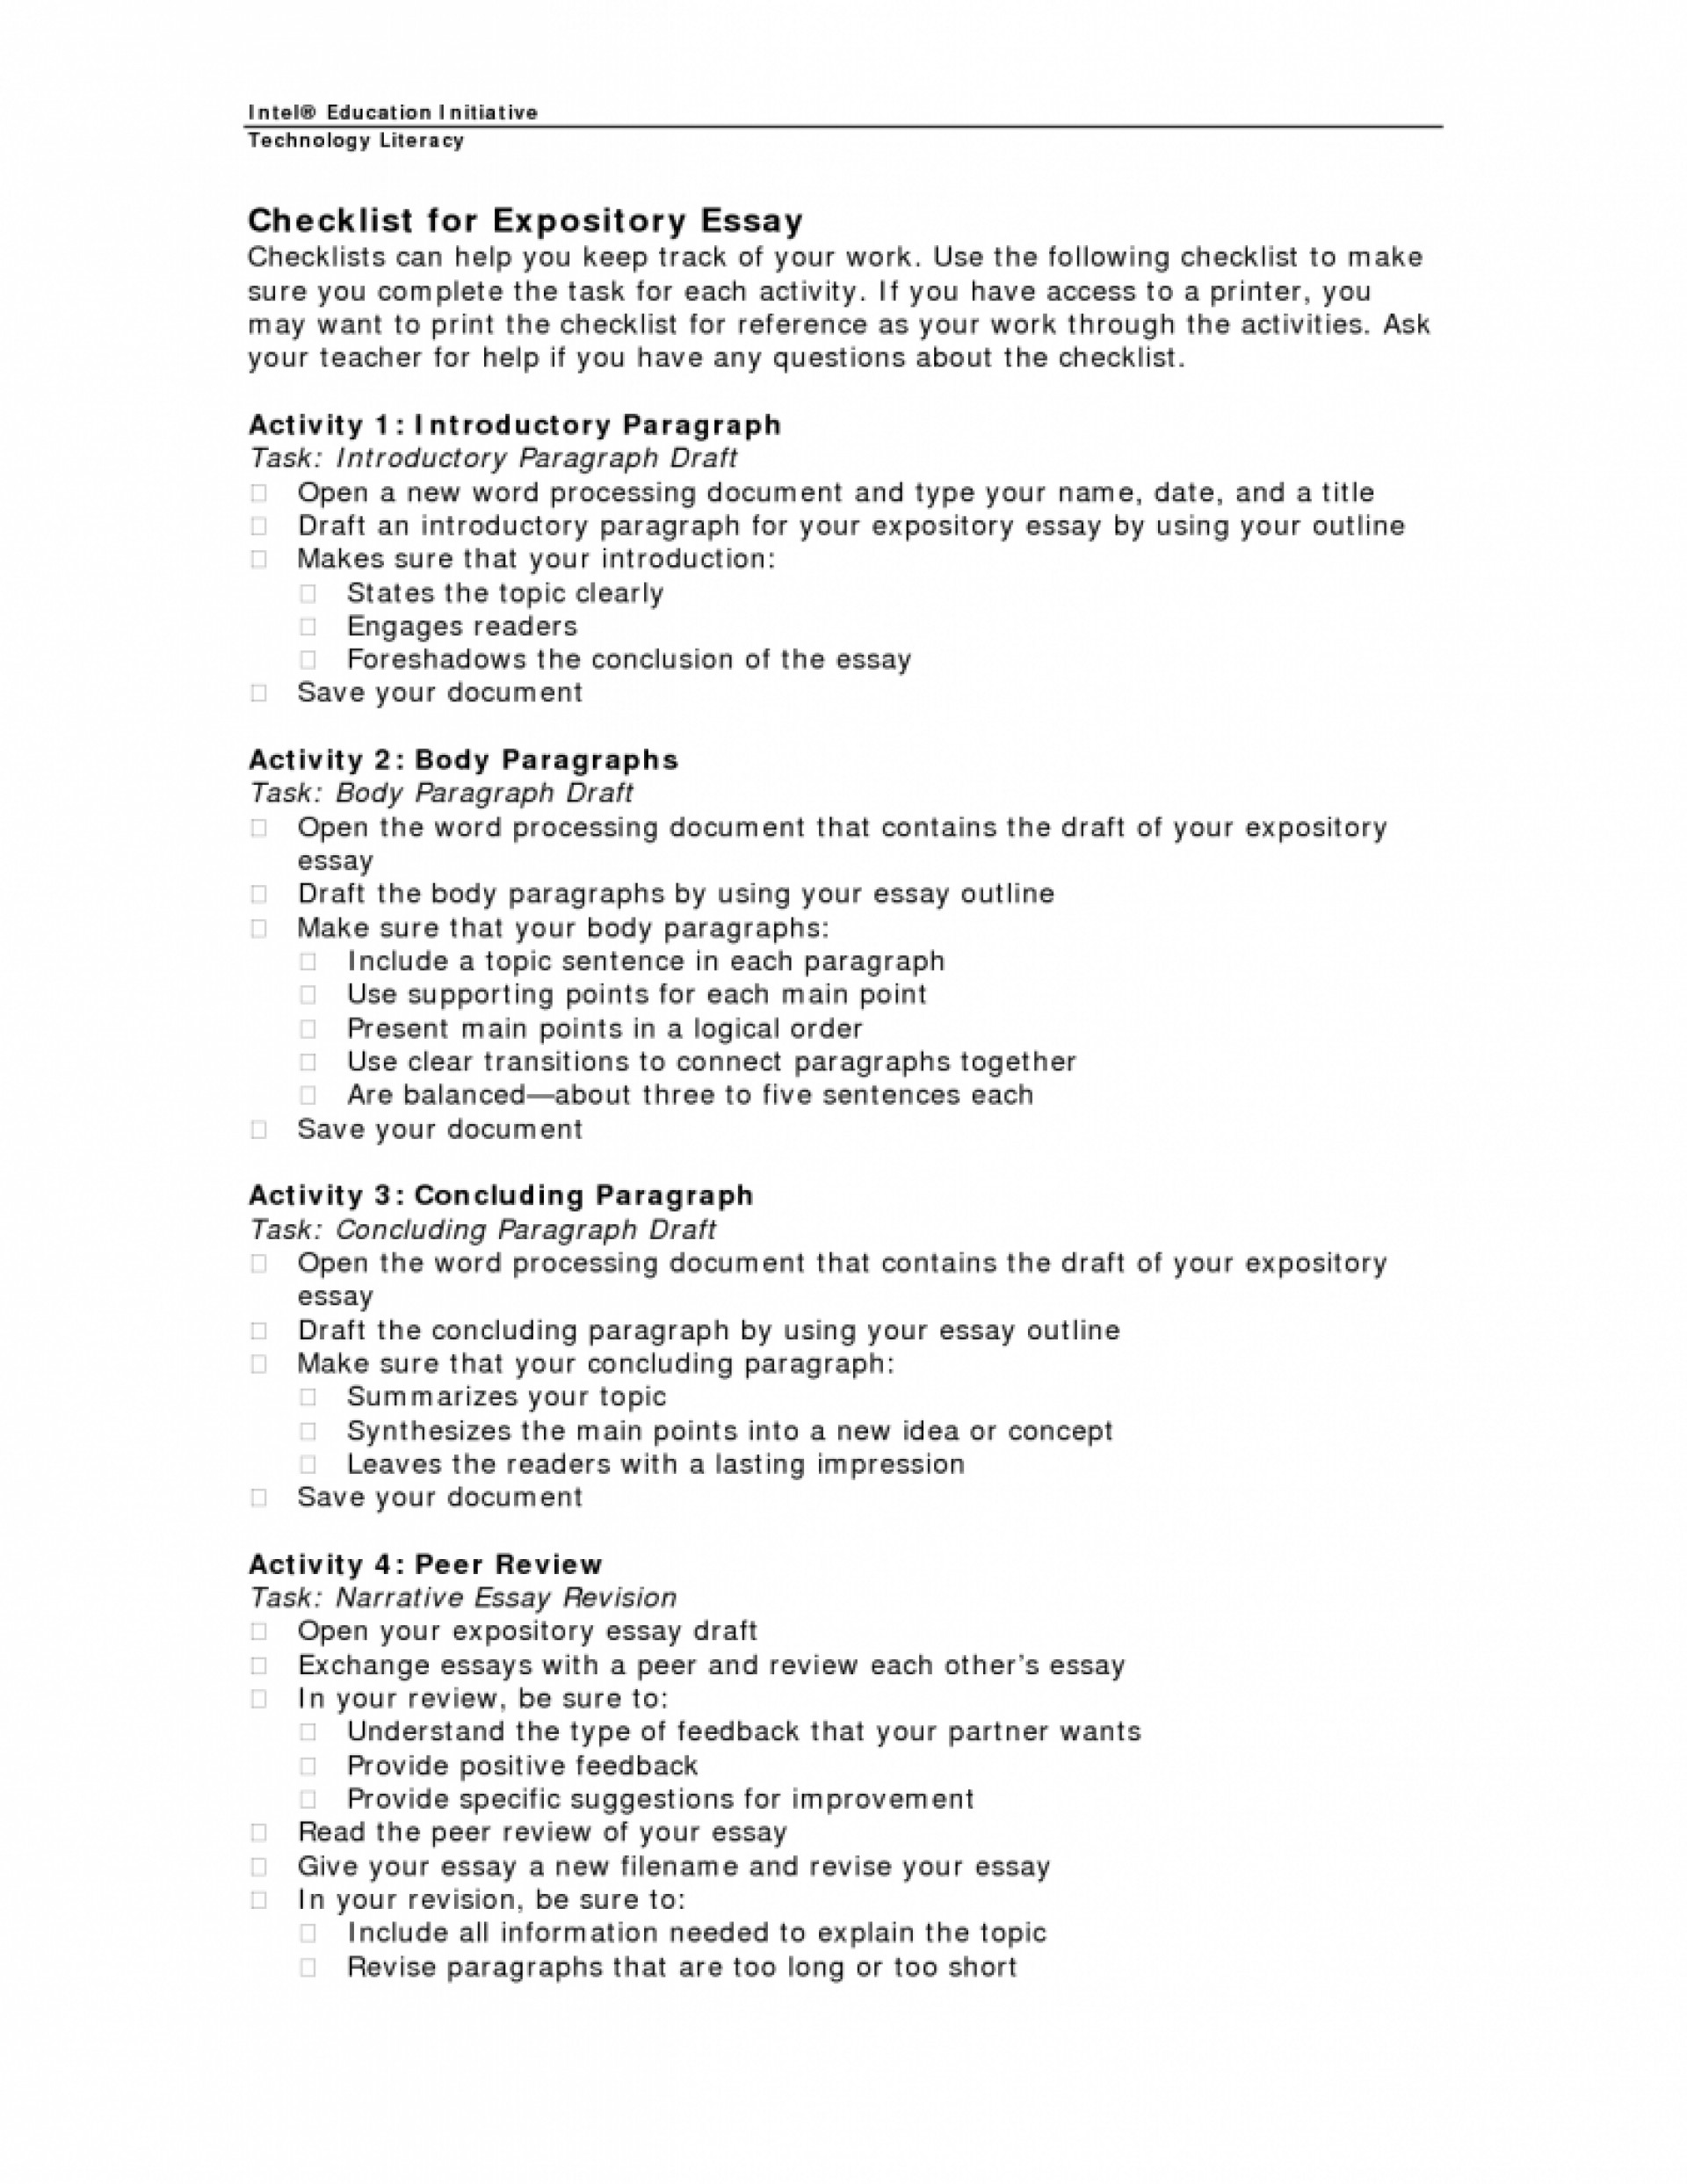 011 Expository Essay Checklist 791x1024 Example How To Create An Outline Unusual For Make Powerpoint Informative Creating A Narrative Is Part Of The 1920